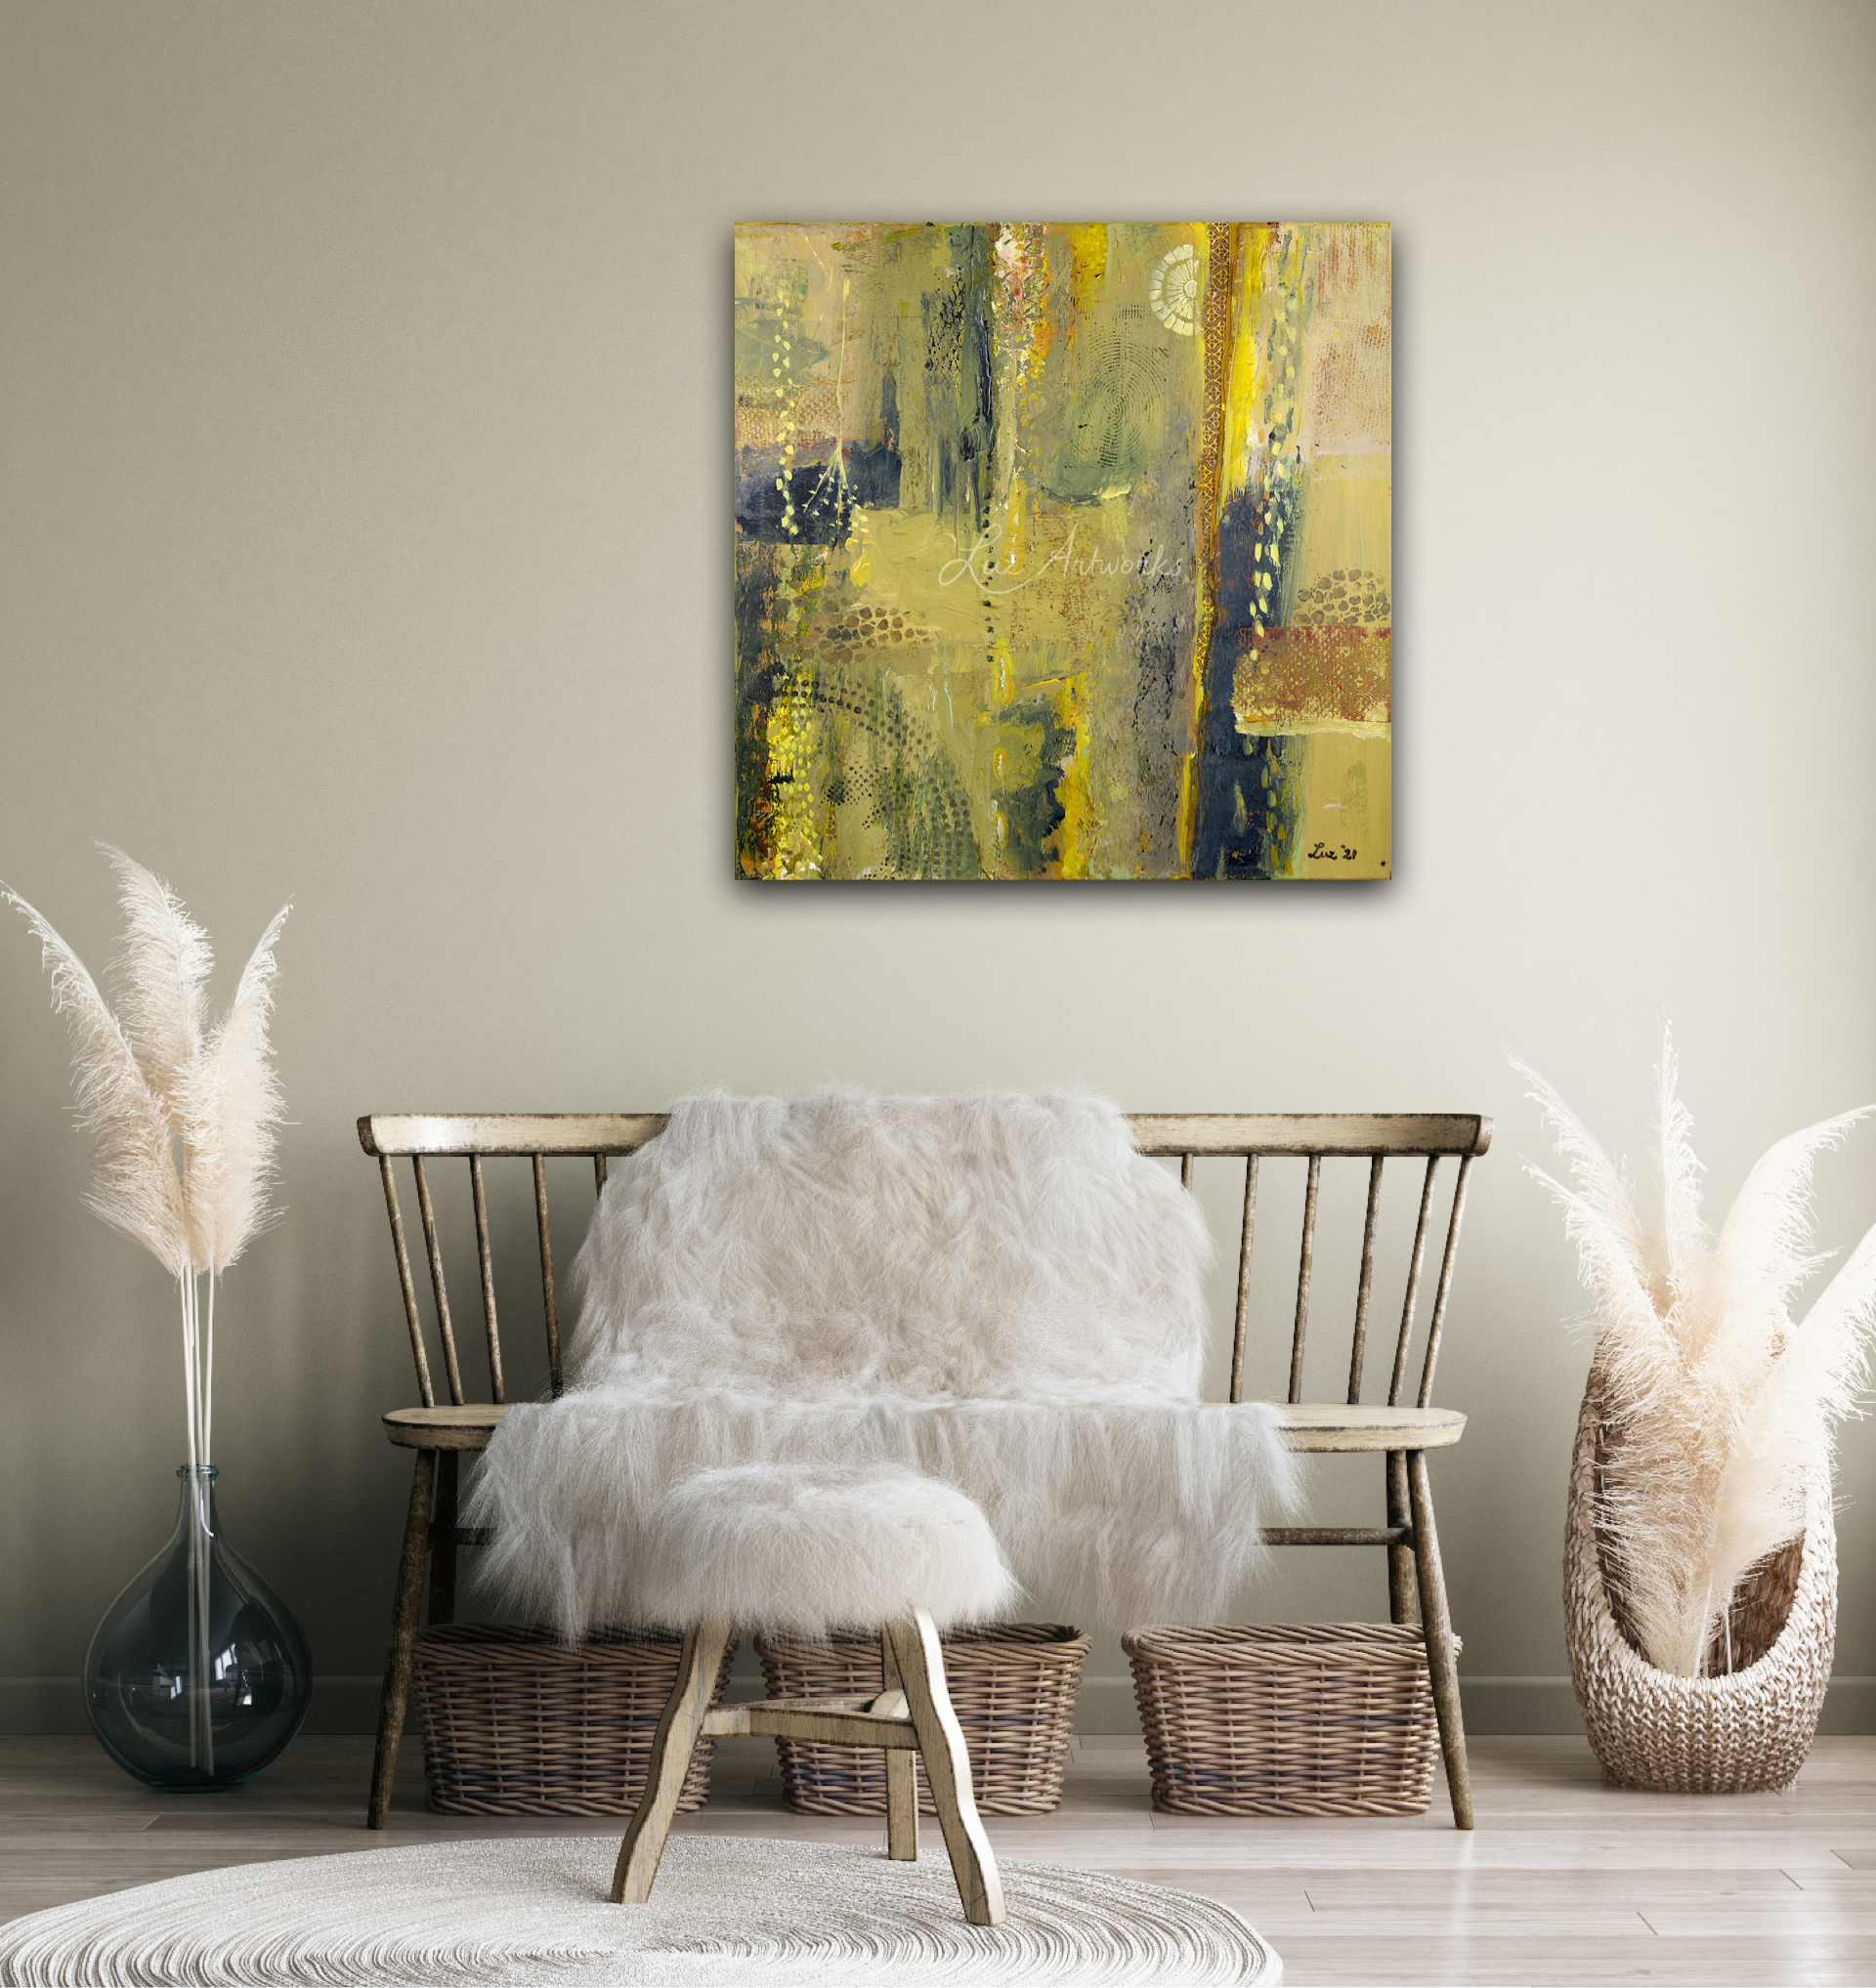 Painting Garden View by Marloes Bloedjes - on the wall